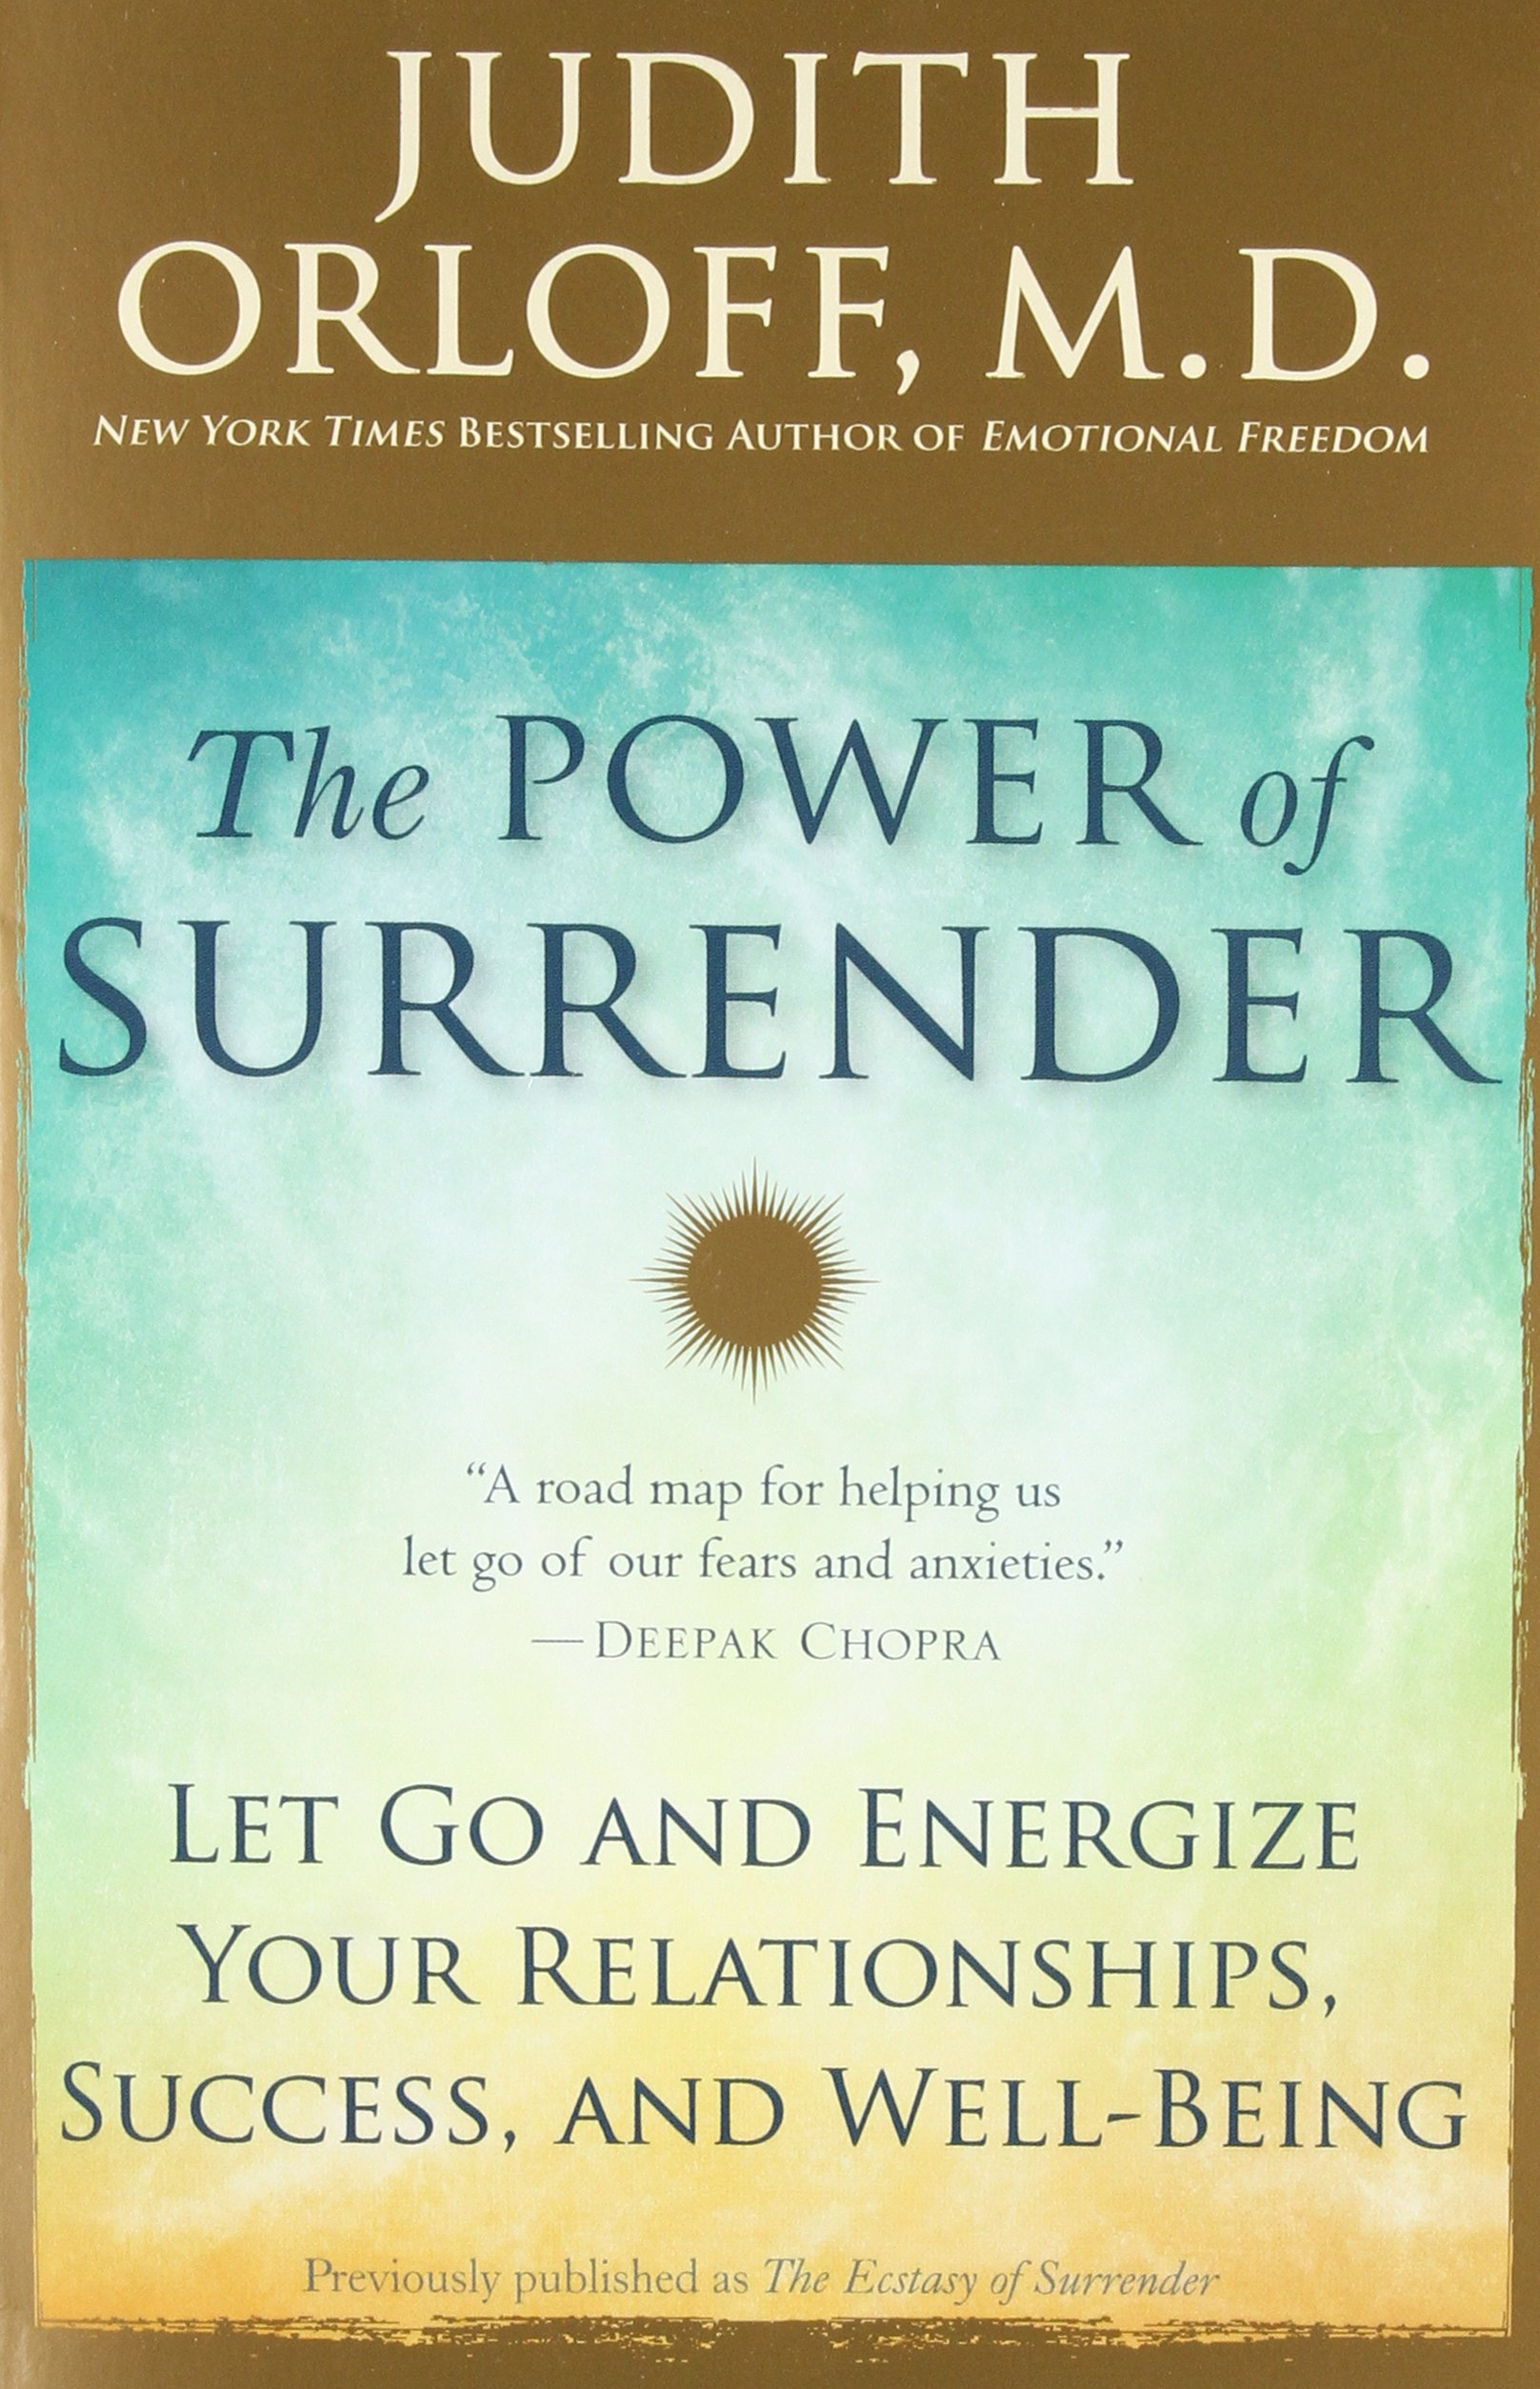 The power of surrender let go and energize your relationships the power of surrender let go and energize your relationships success and well being judith orloff md 9780307338211 amazon books fandeluxe Images